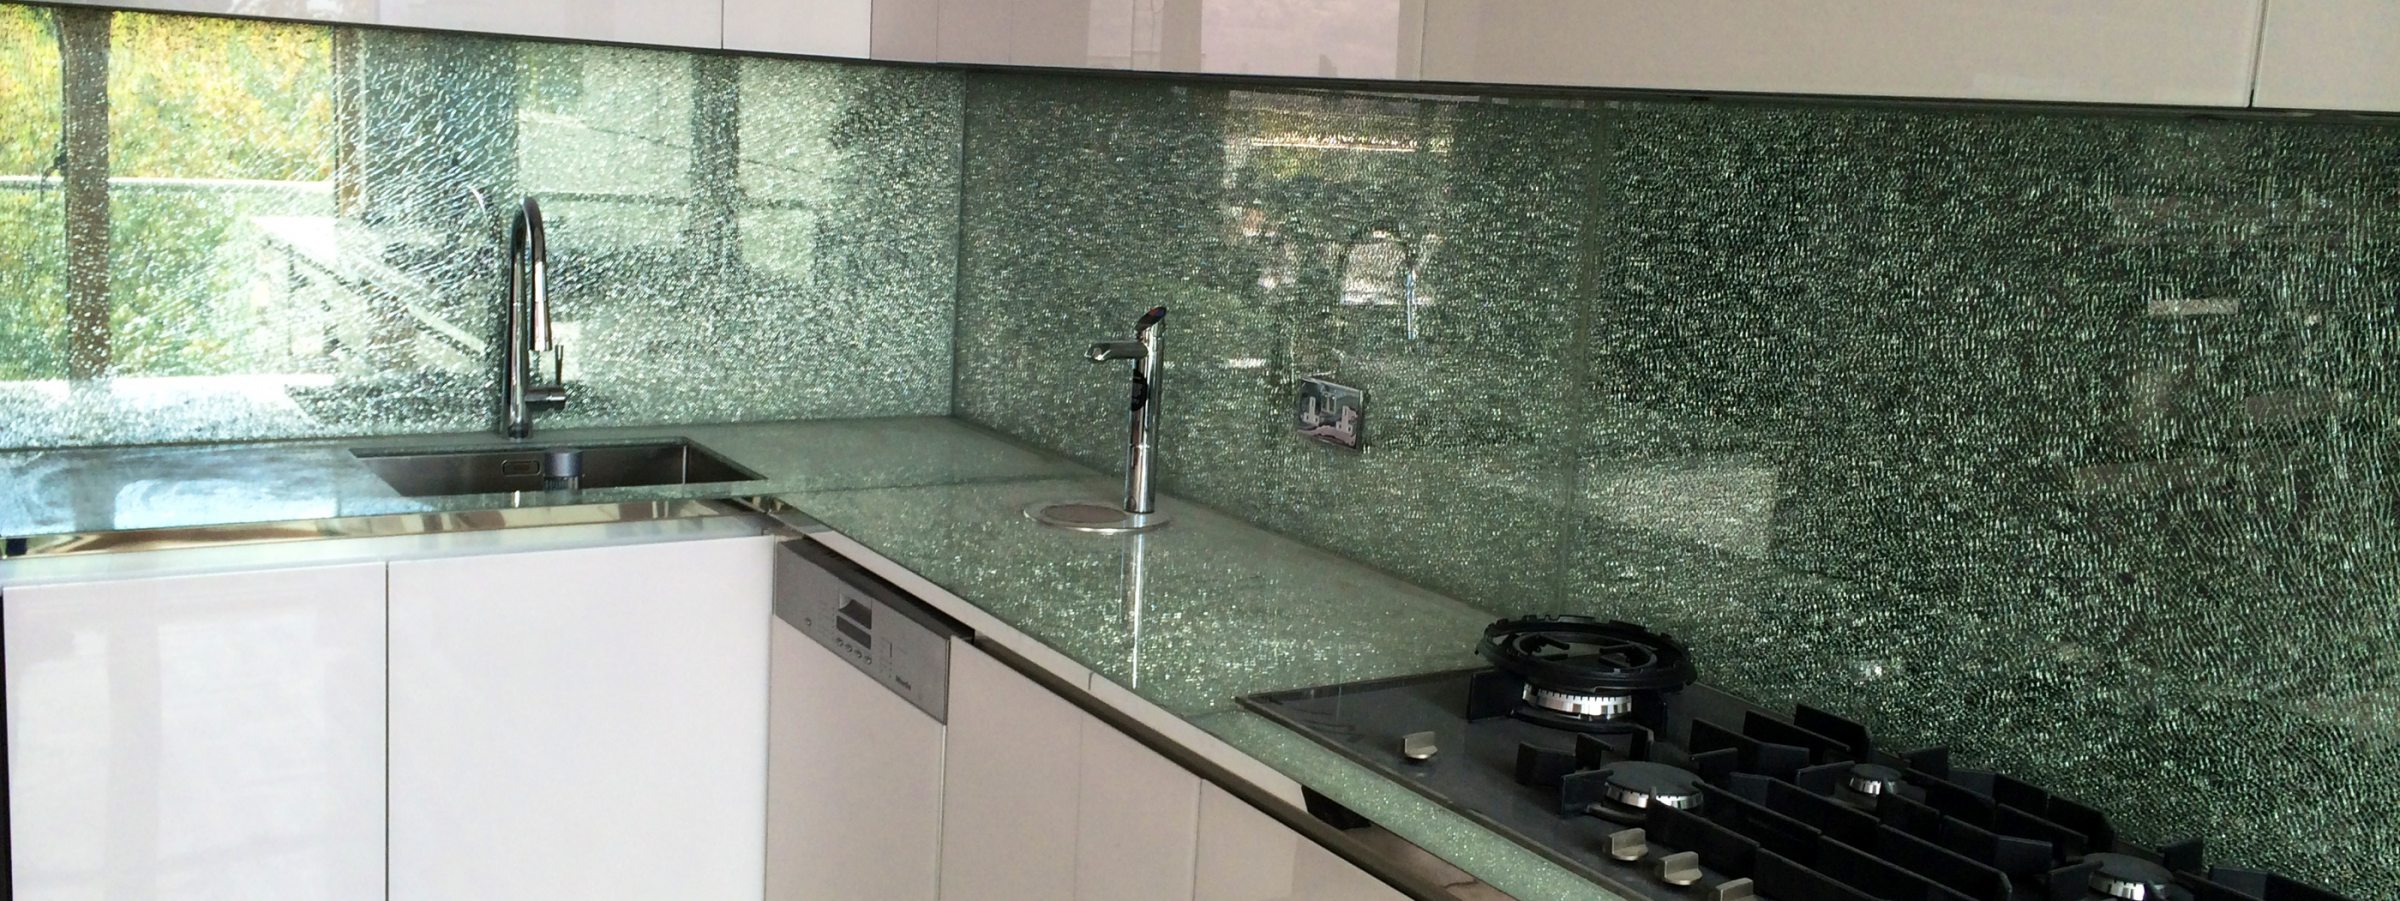 Crackle Glass Splashbacks and Worktop